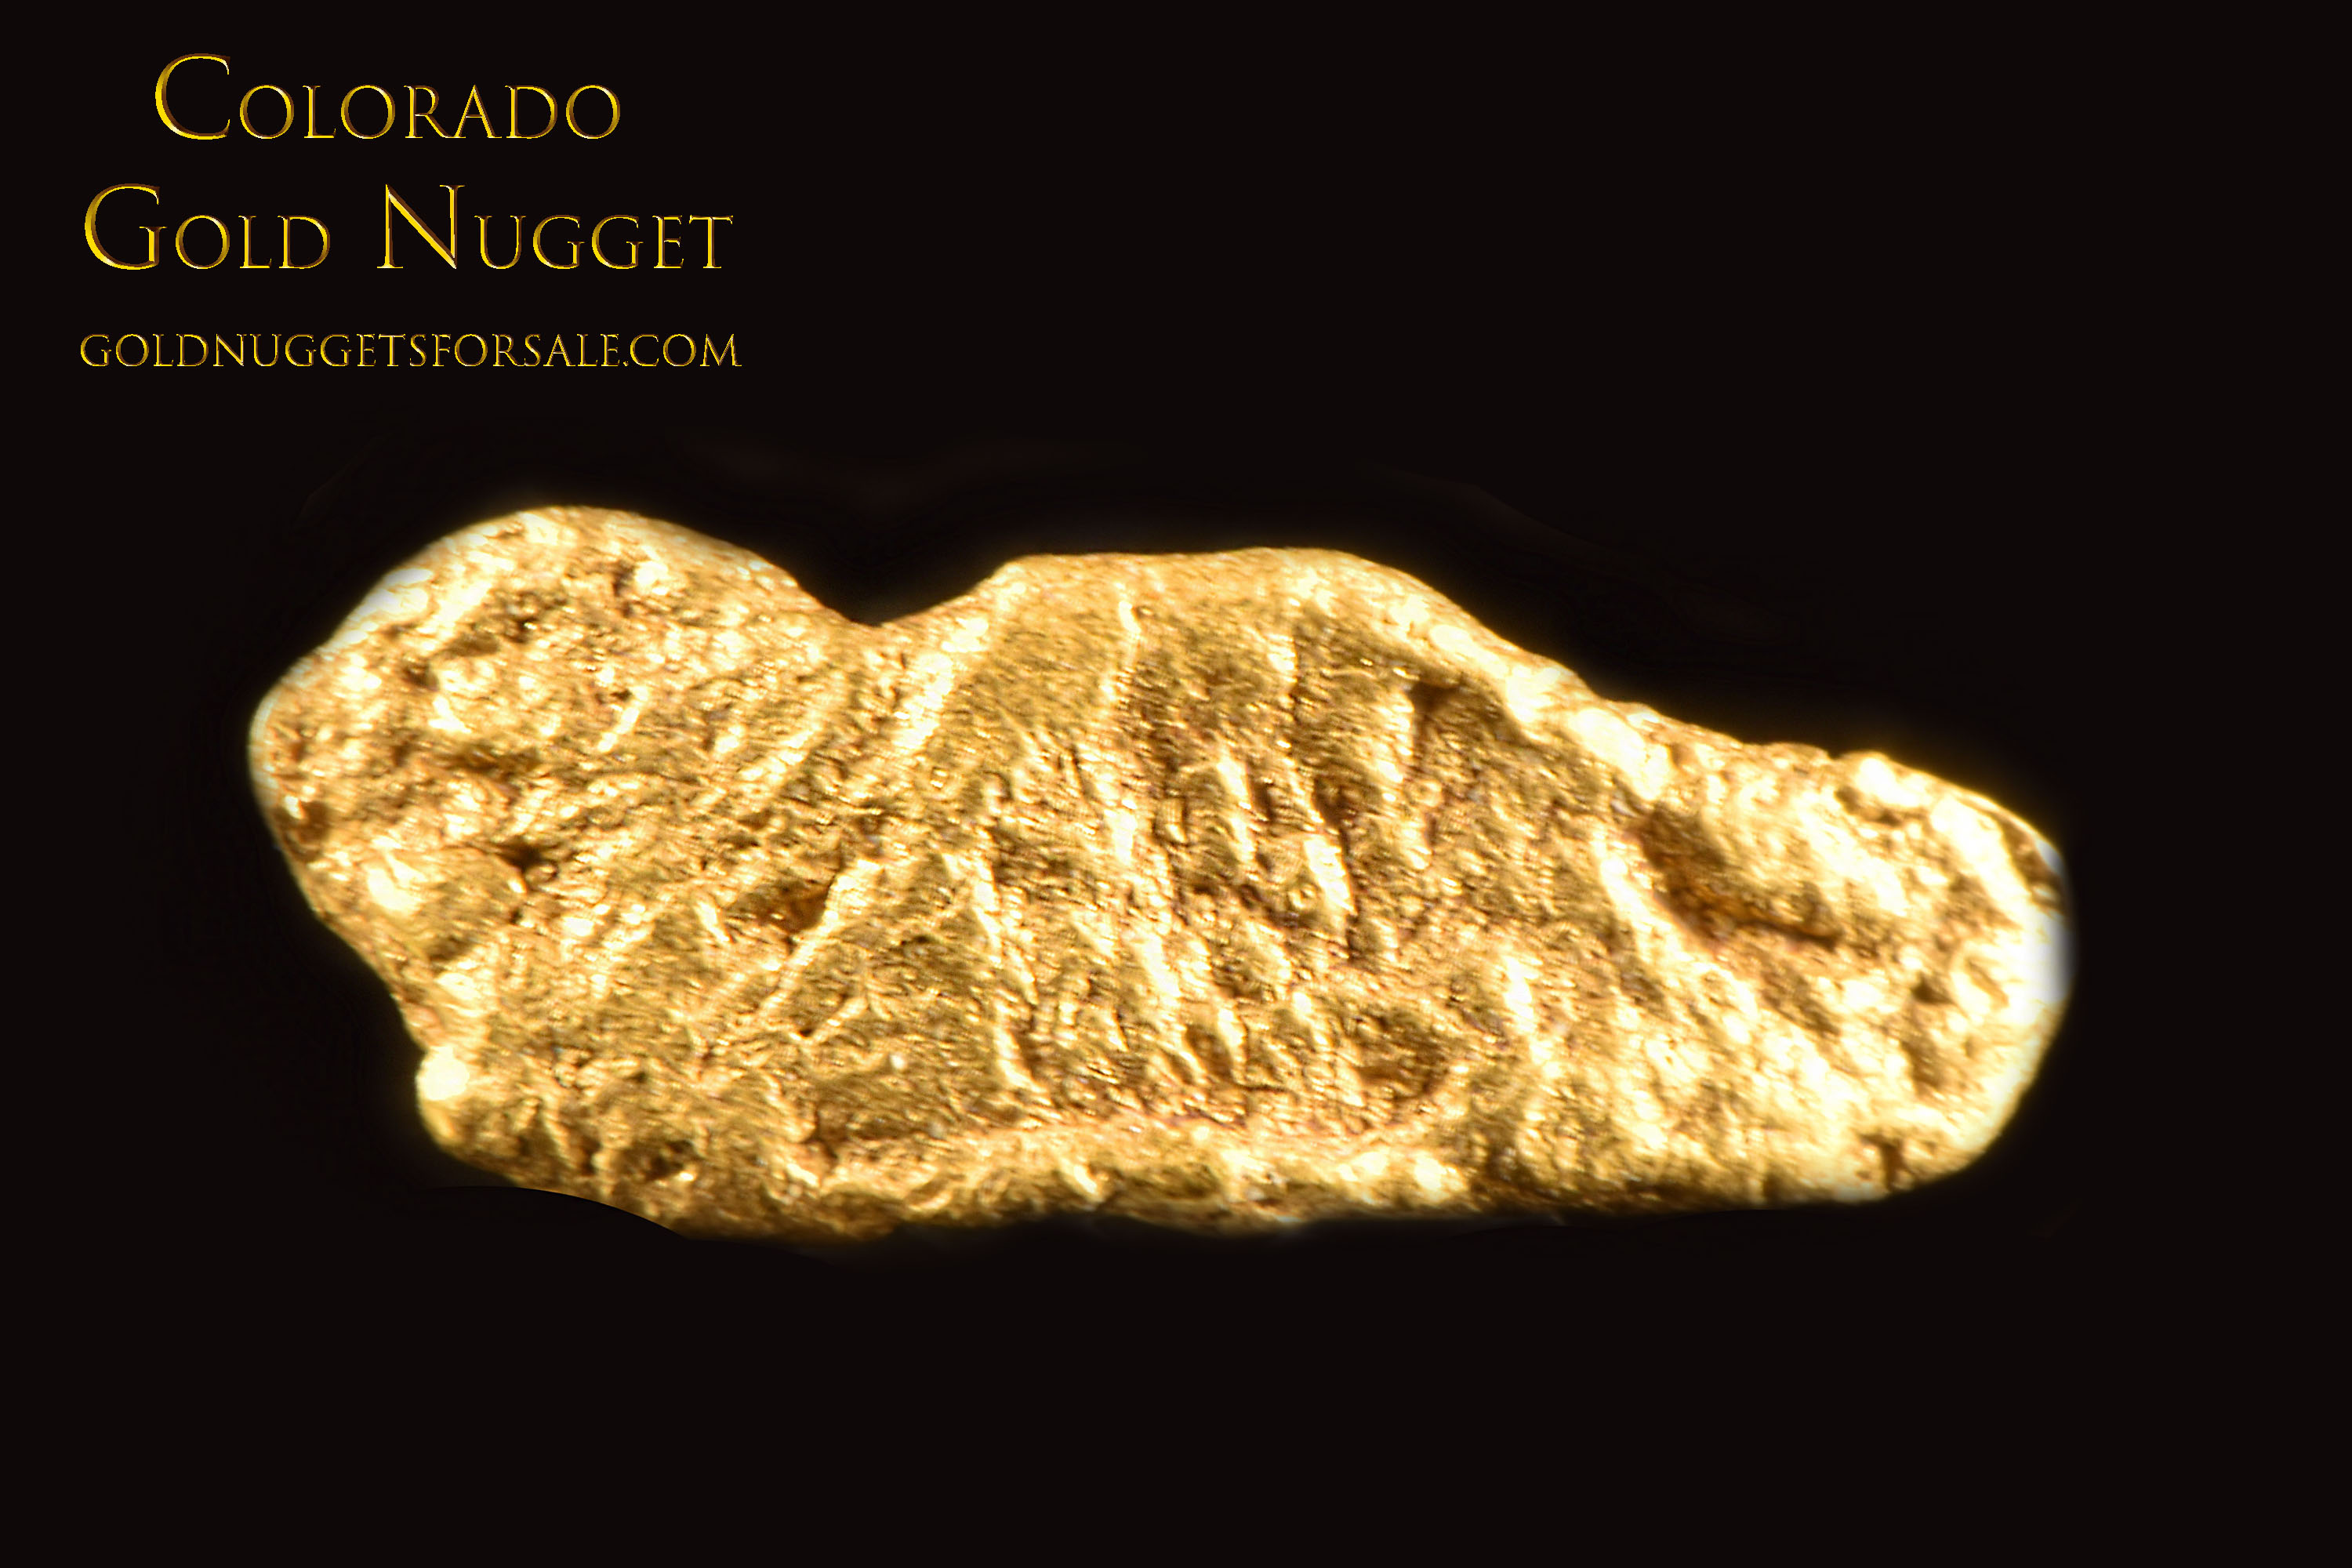 Perfect for Jewelry Making - Colorado Gold Nugget